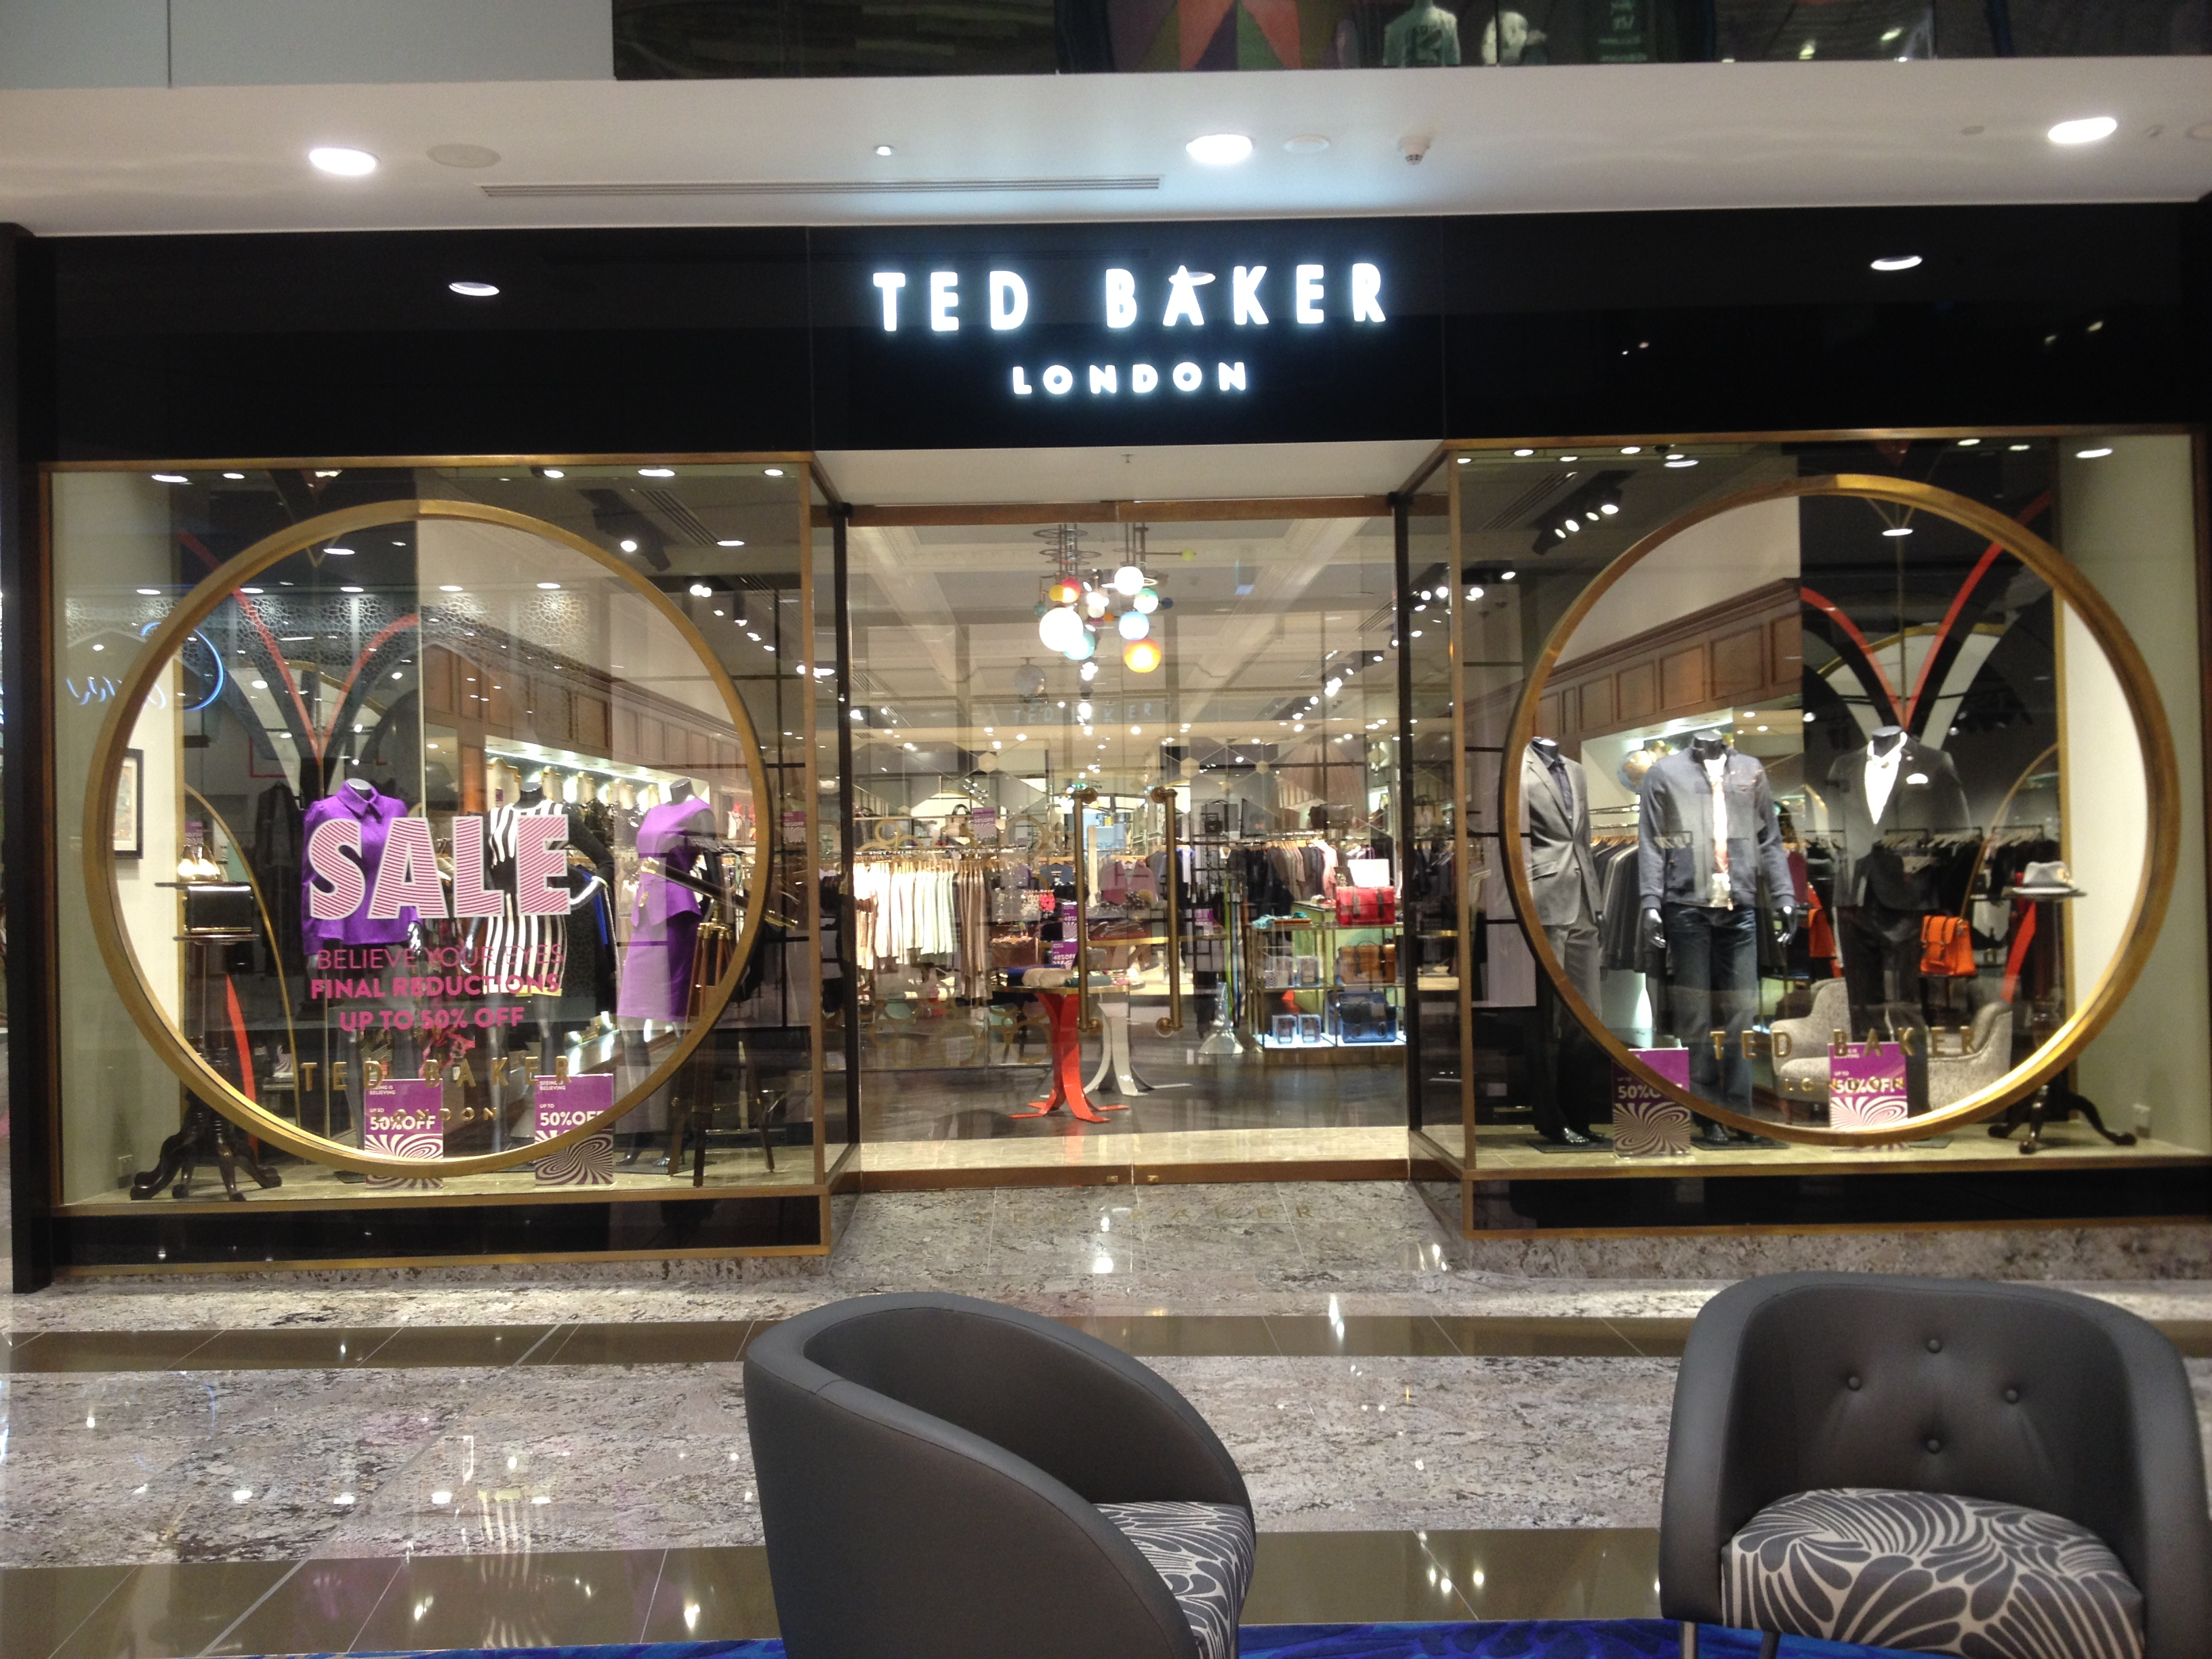 https://upload.wikimedia.org/wikipedia/commons/4/48/Ted_Baker_at_Indooroopilly_Shopping_Centre_06.JPG